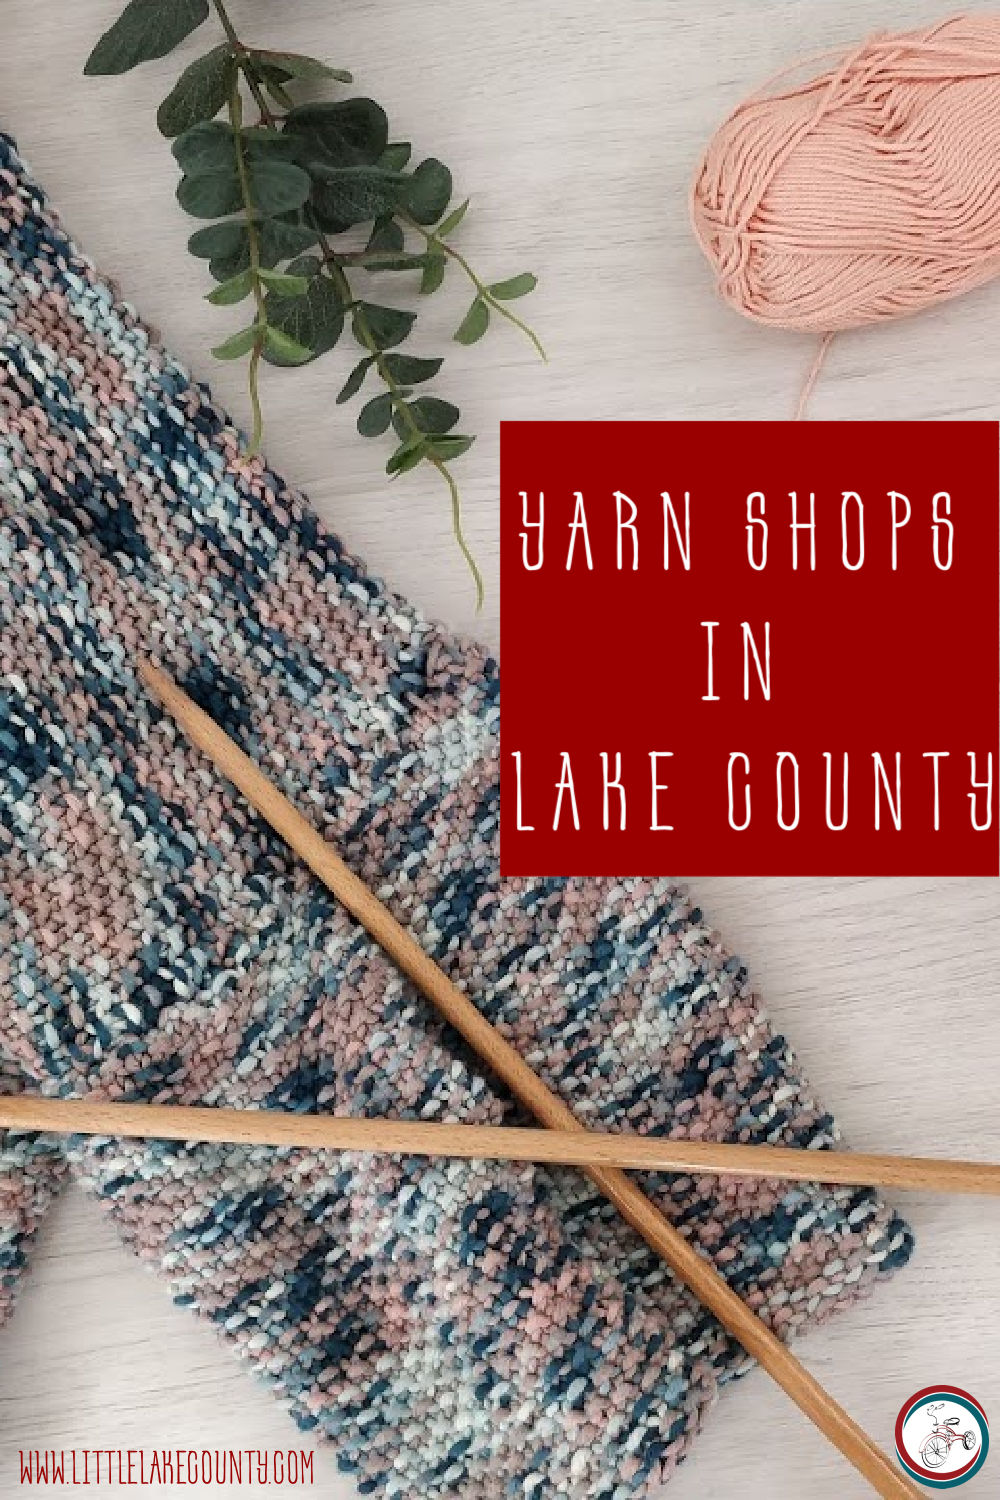 Fall for Our Favorite Yarn Shops